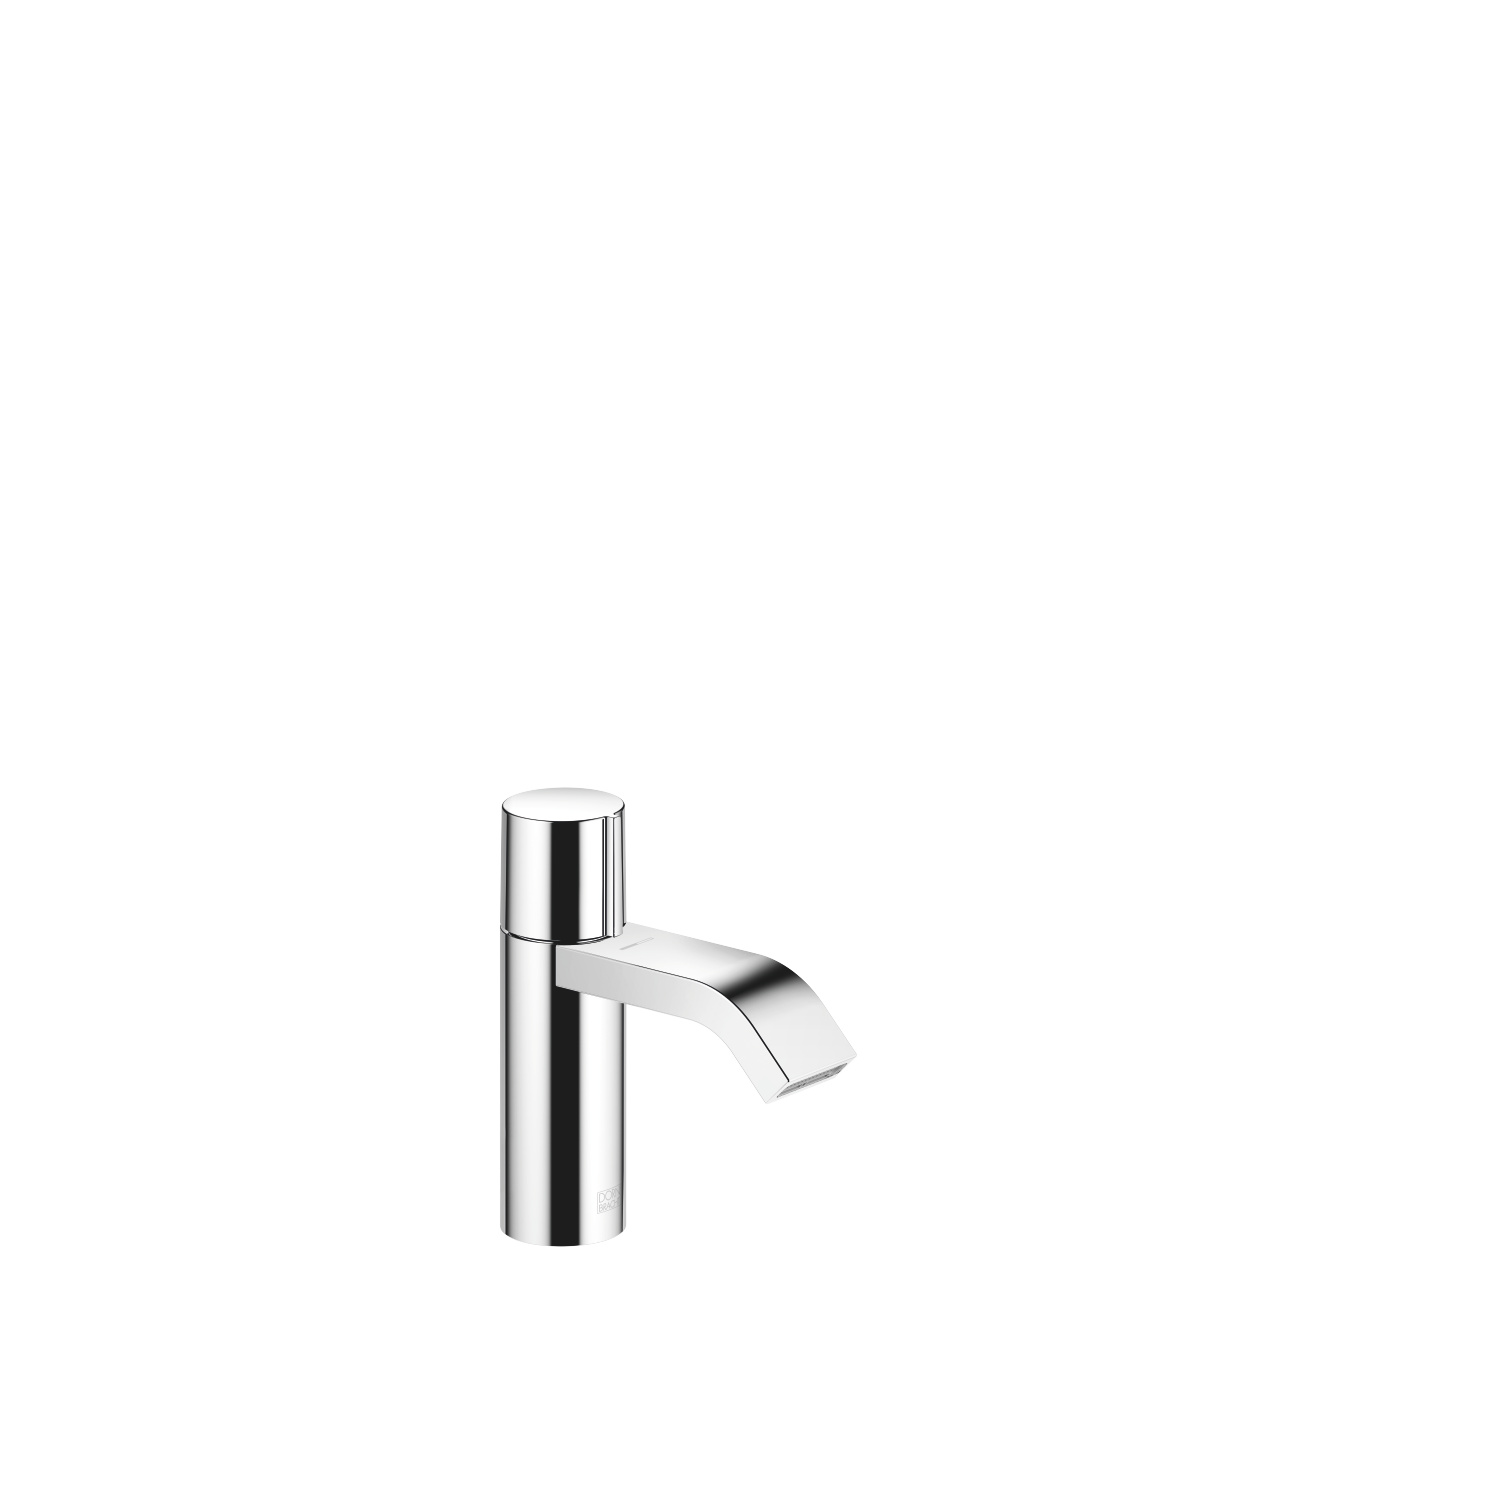 Single-lever basin mixer without pop-up waste - polished chrome - 33 527 670-00